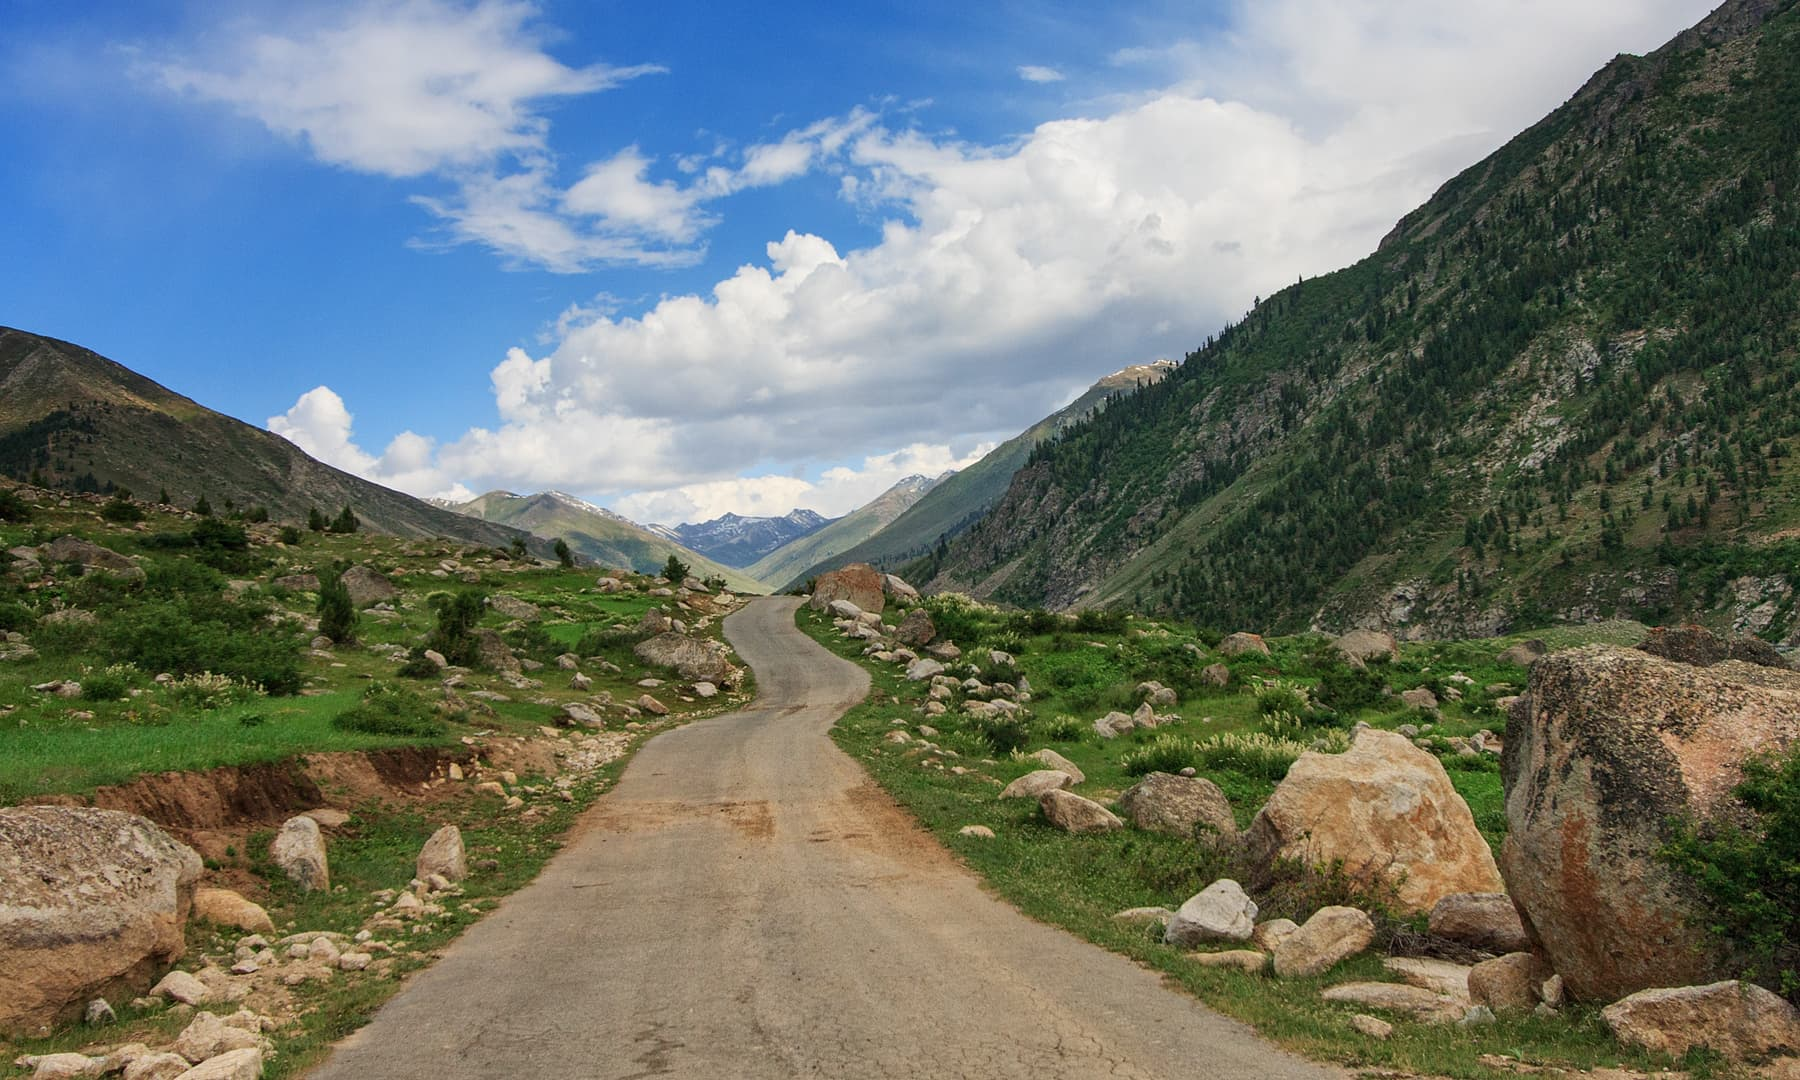 Road to Astore from Chillam. — Syed Mehdi Bukhari